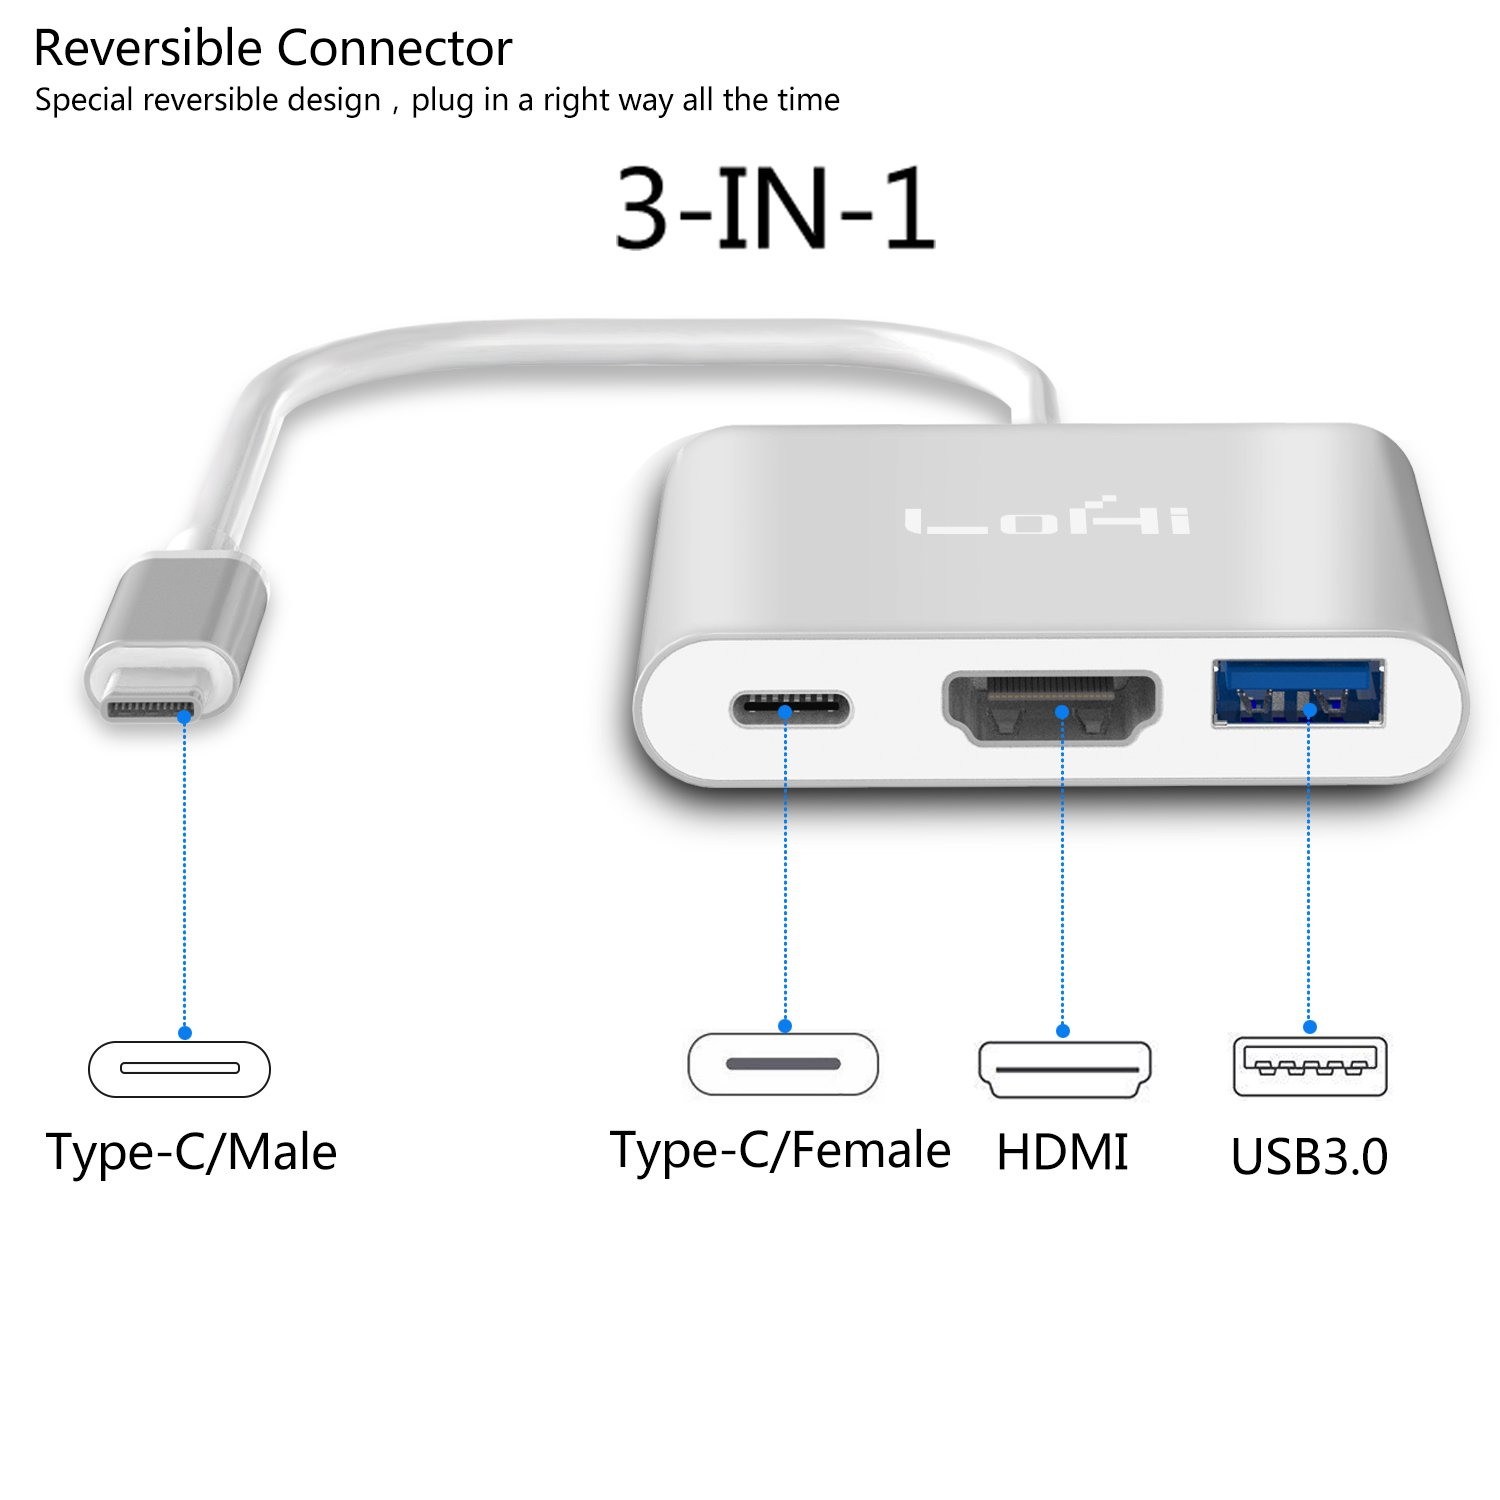 USB-C-to-HDMI, LoHi 3-in-1 Digital Multiport adapter, USB-C Quick Charging + HDMI (Supports 4K) + USB 3.1 Port, for HDMI Converter and MacBook /ChromeBook Pixel/USB-C Devices (Sliver)